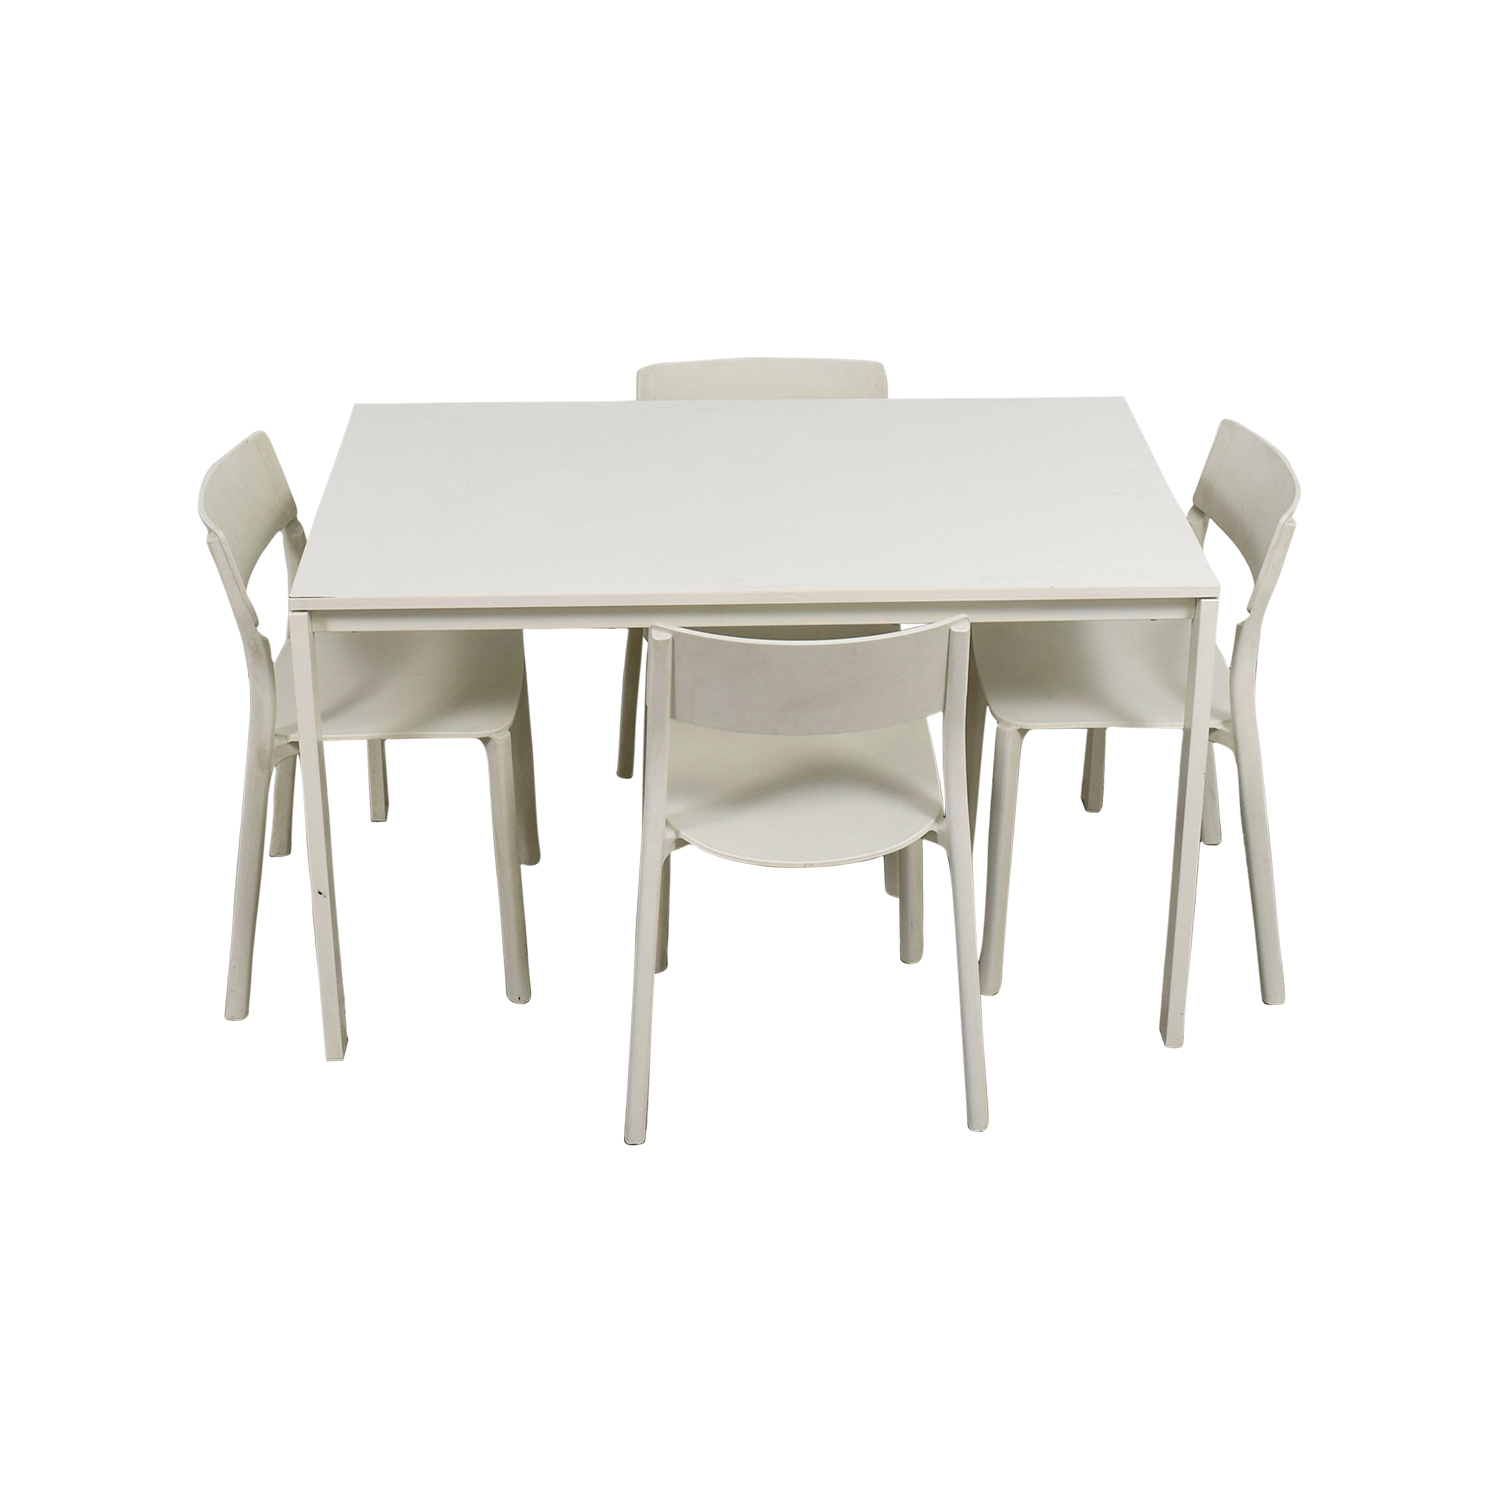 White Desk And Chair 65 Off Ikea Ikea White Kitchen Table And Chairs Tables